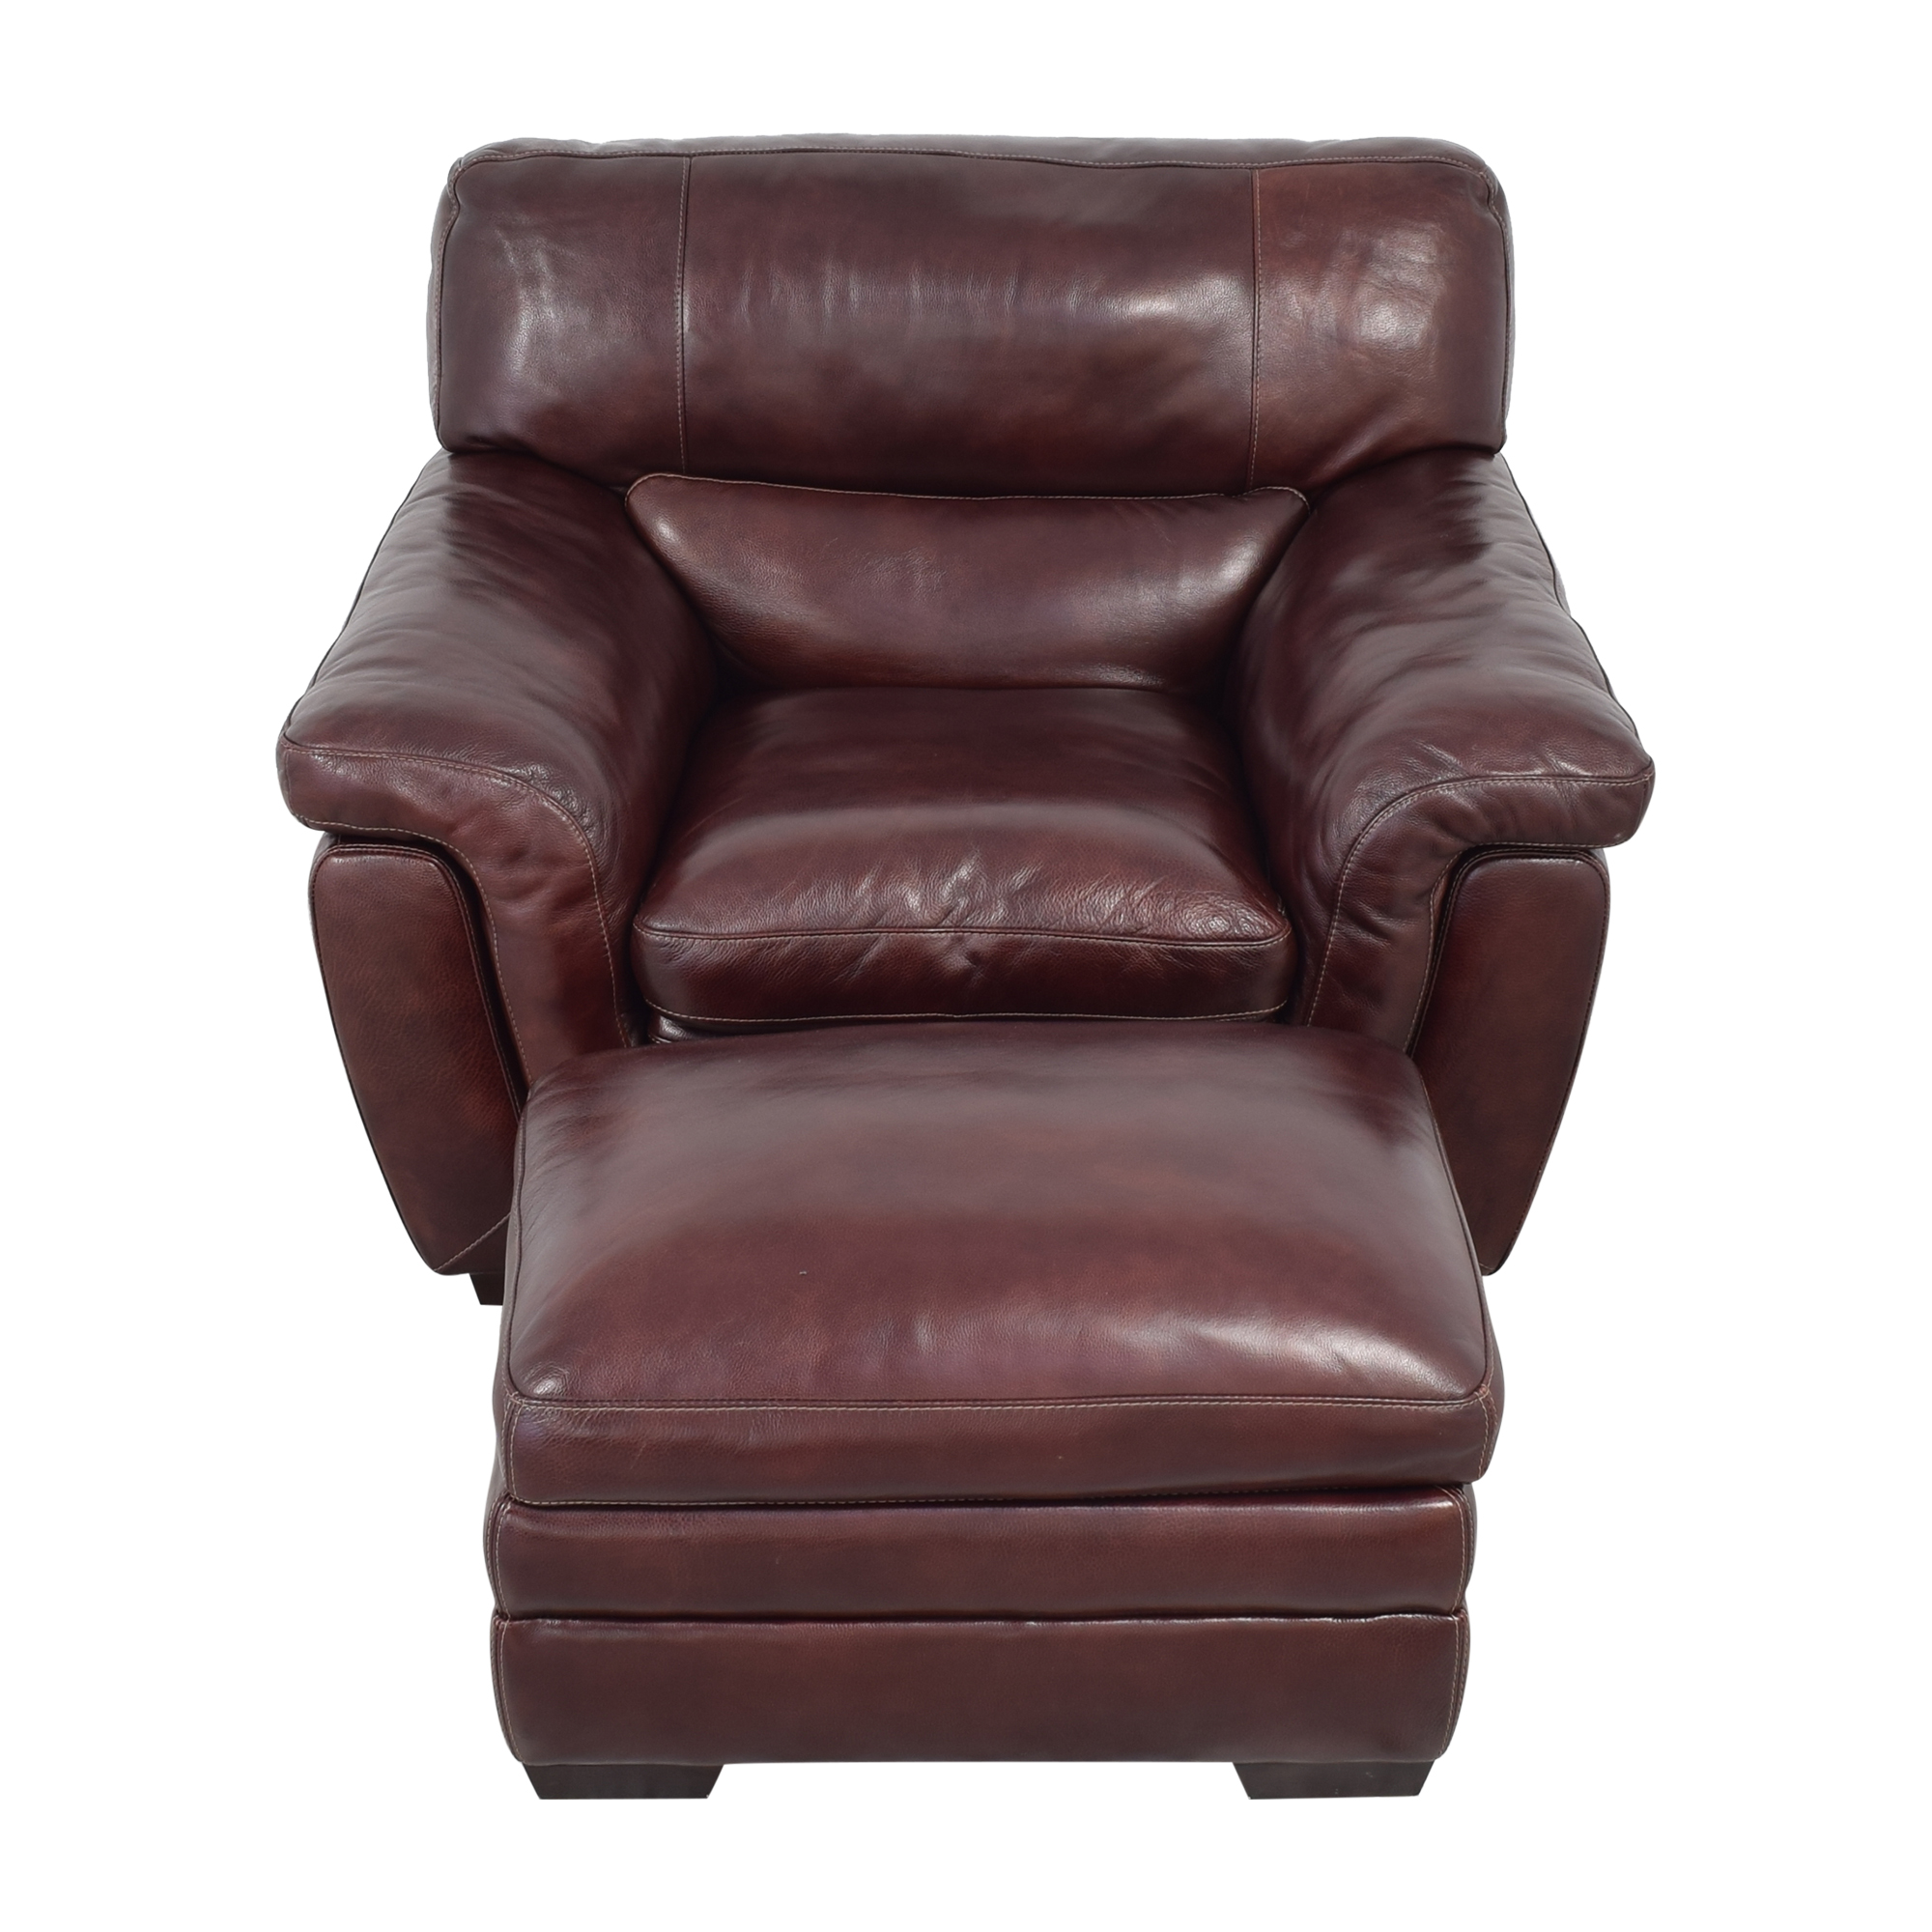 Raymour & Flanigan Raymour & Flanigan Lounge Chair and Ottoman discount